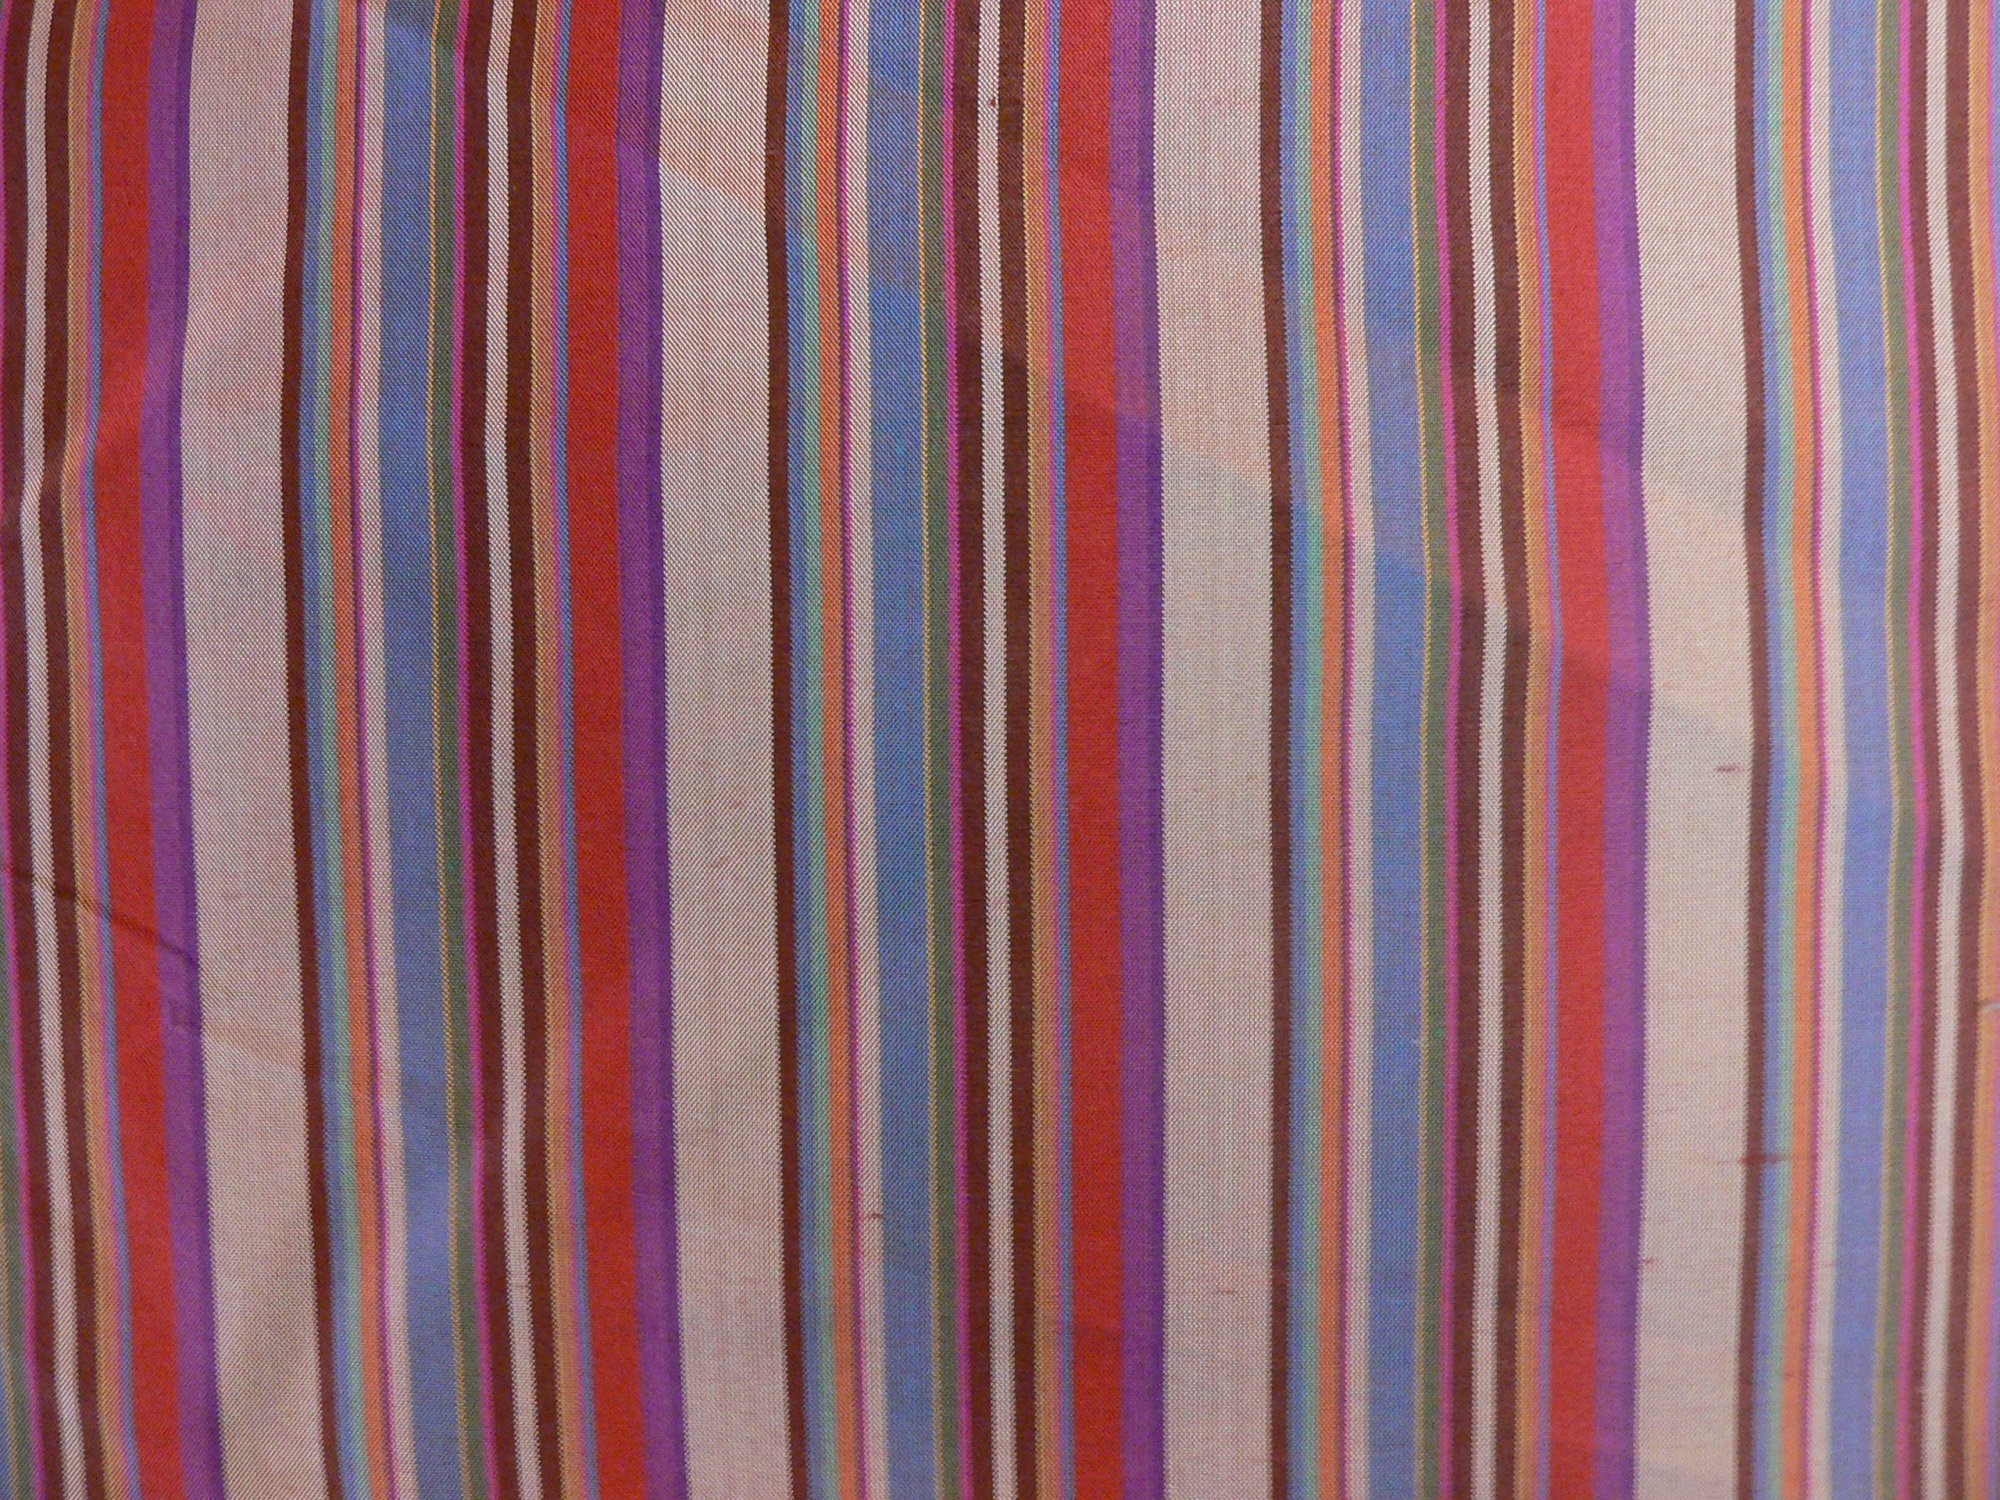 100% silk taffeta, multi striped burgundy/teal/fushia